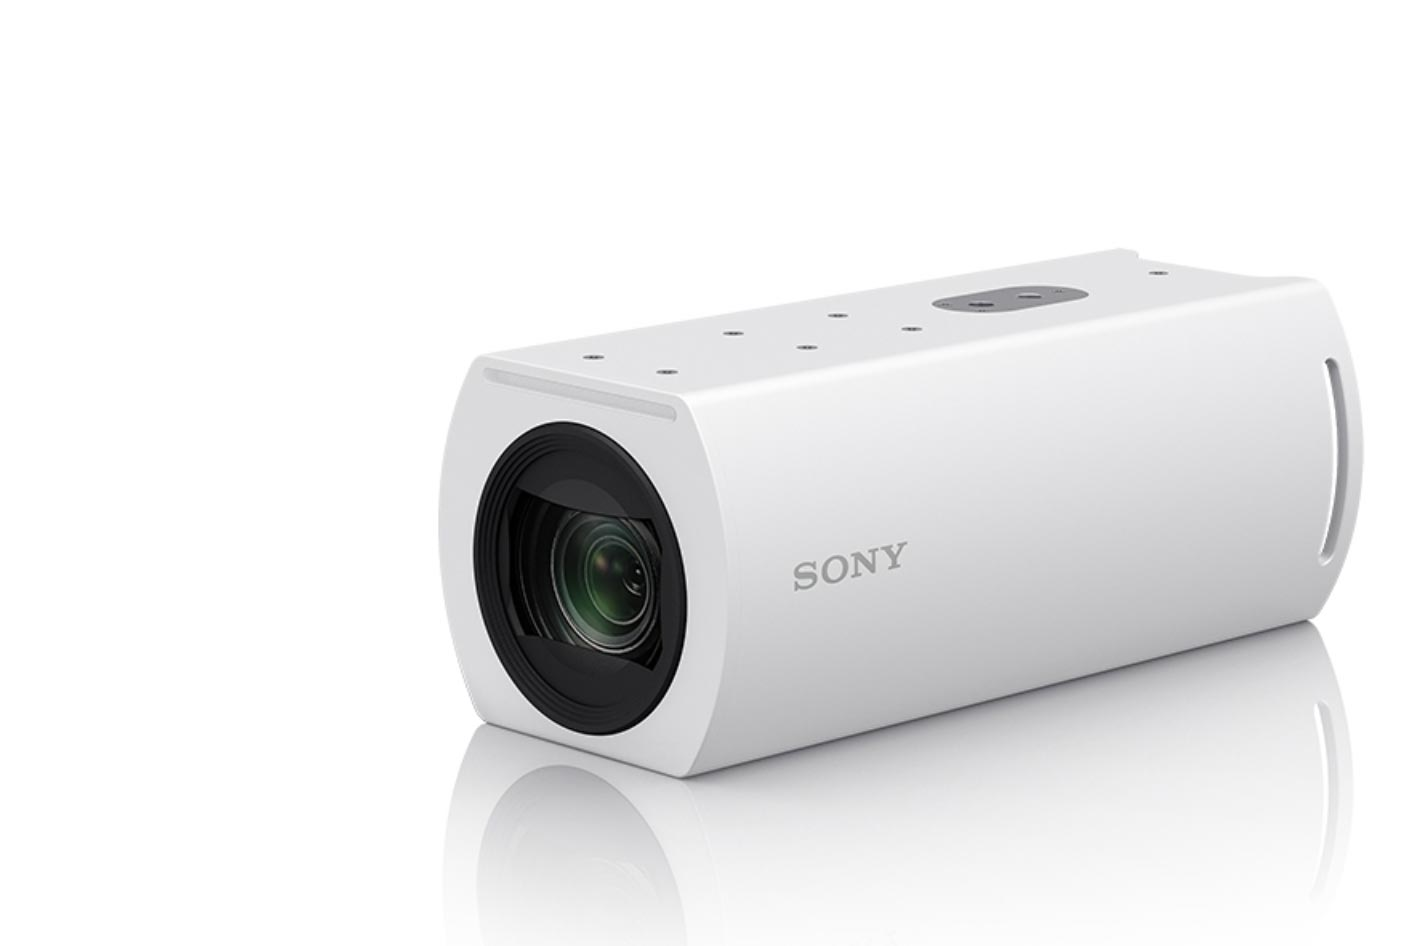 Sony expands remote camera line-up with SRG-XP1 and SRG-XB25